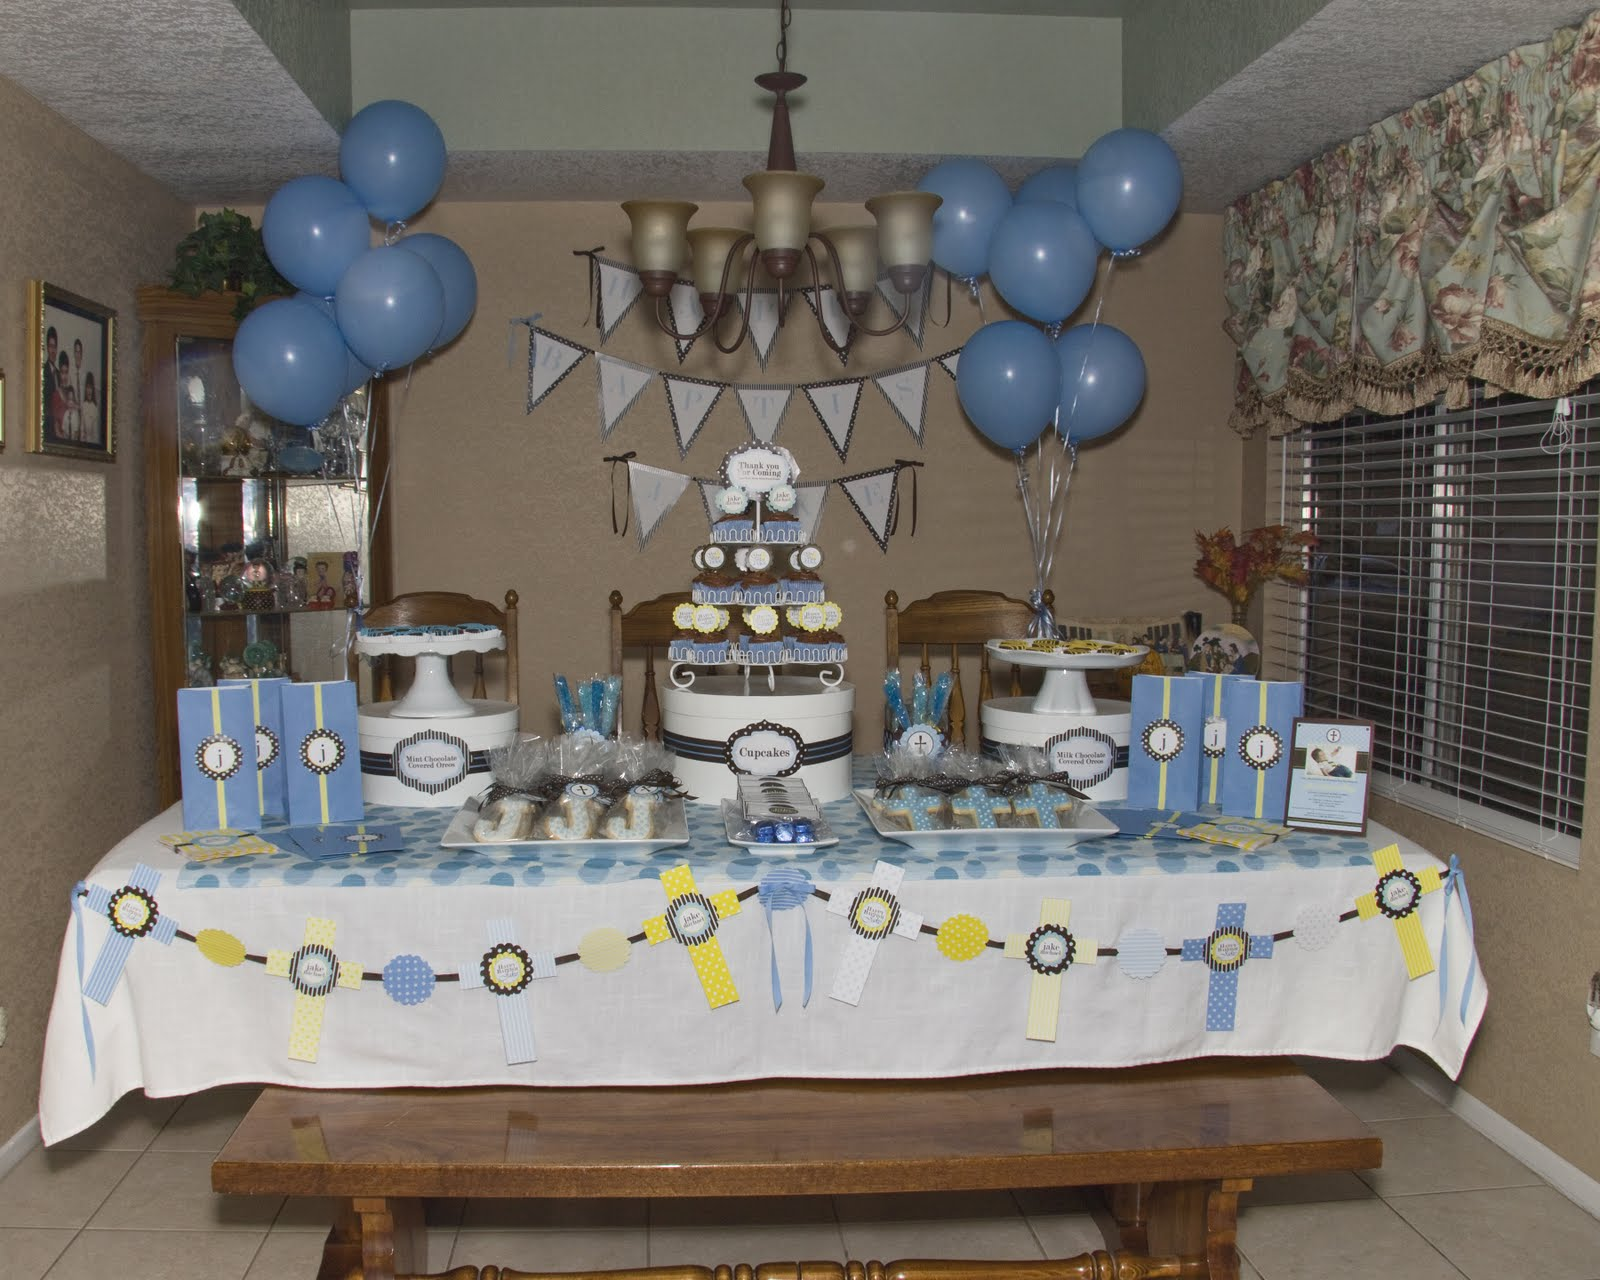 Christening party table cake ideas and designs - Baptism party decoration ideas ...